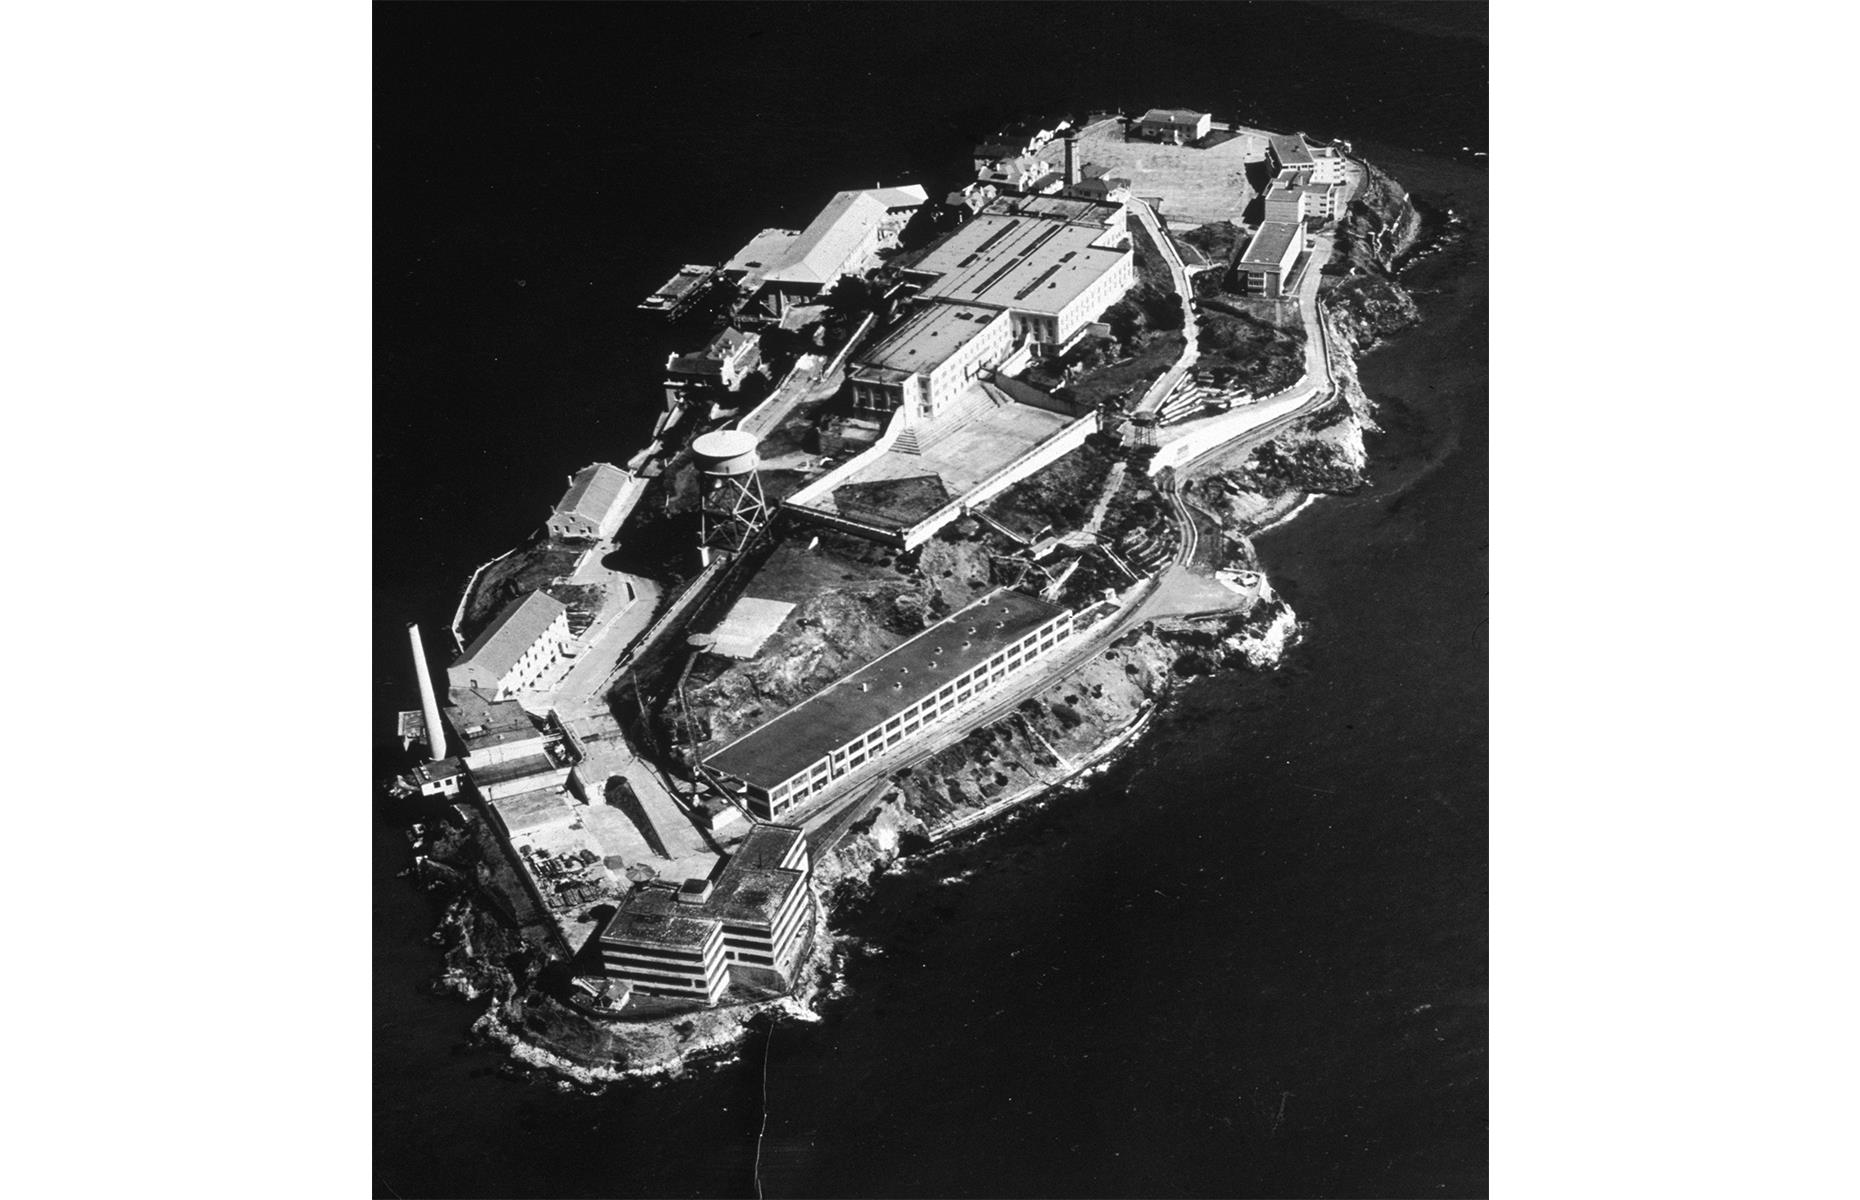 Slide 40 of 48: Alcatraz Island's history is far reaching, serving as a fortress and military jail since the mid-19th century. It became the world-famous federal penitentiary, known as The Rock, in 1934 and housed some of America's most infamous felons, including Al Capone, until it closed in 1963. The island became part of the Golden Gate National Recreation Area in 1972 and opened to the public as an attraction a year later. Today, it usually welcomes around one million tourists annually.